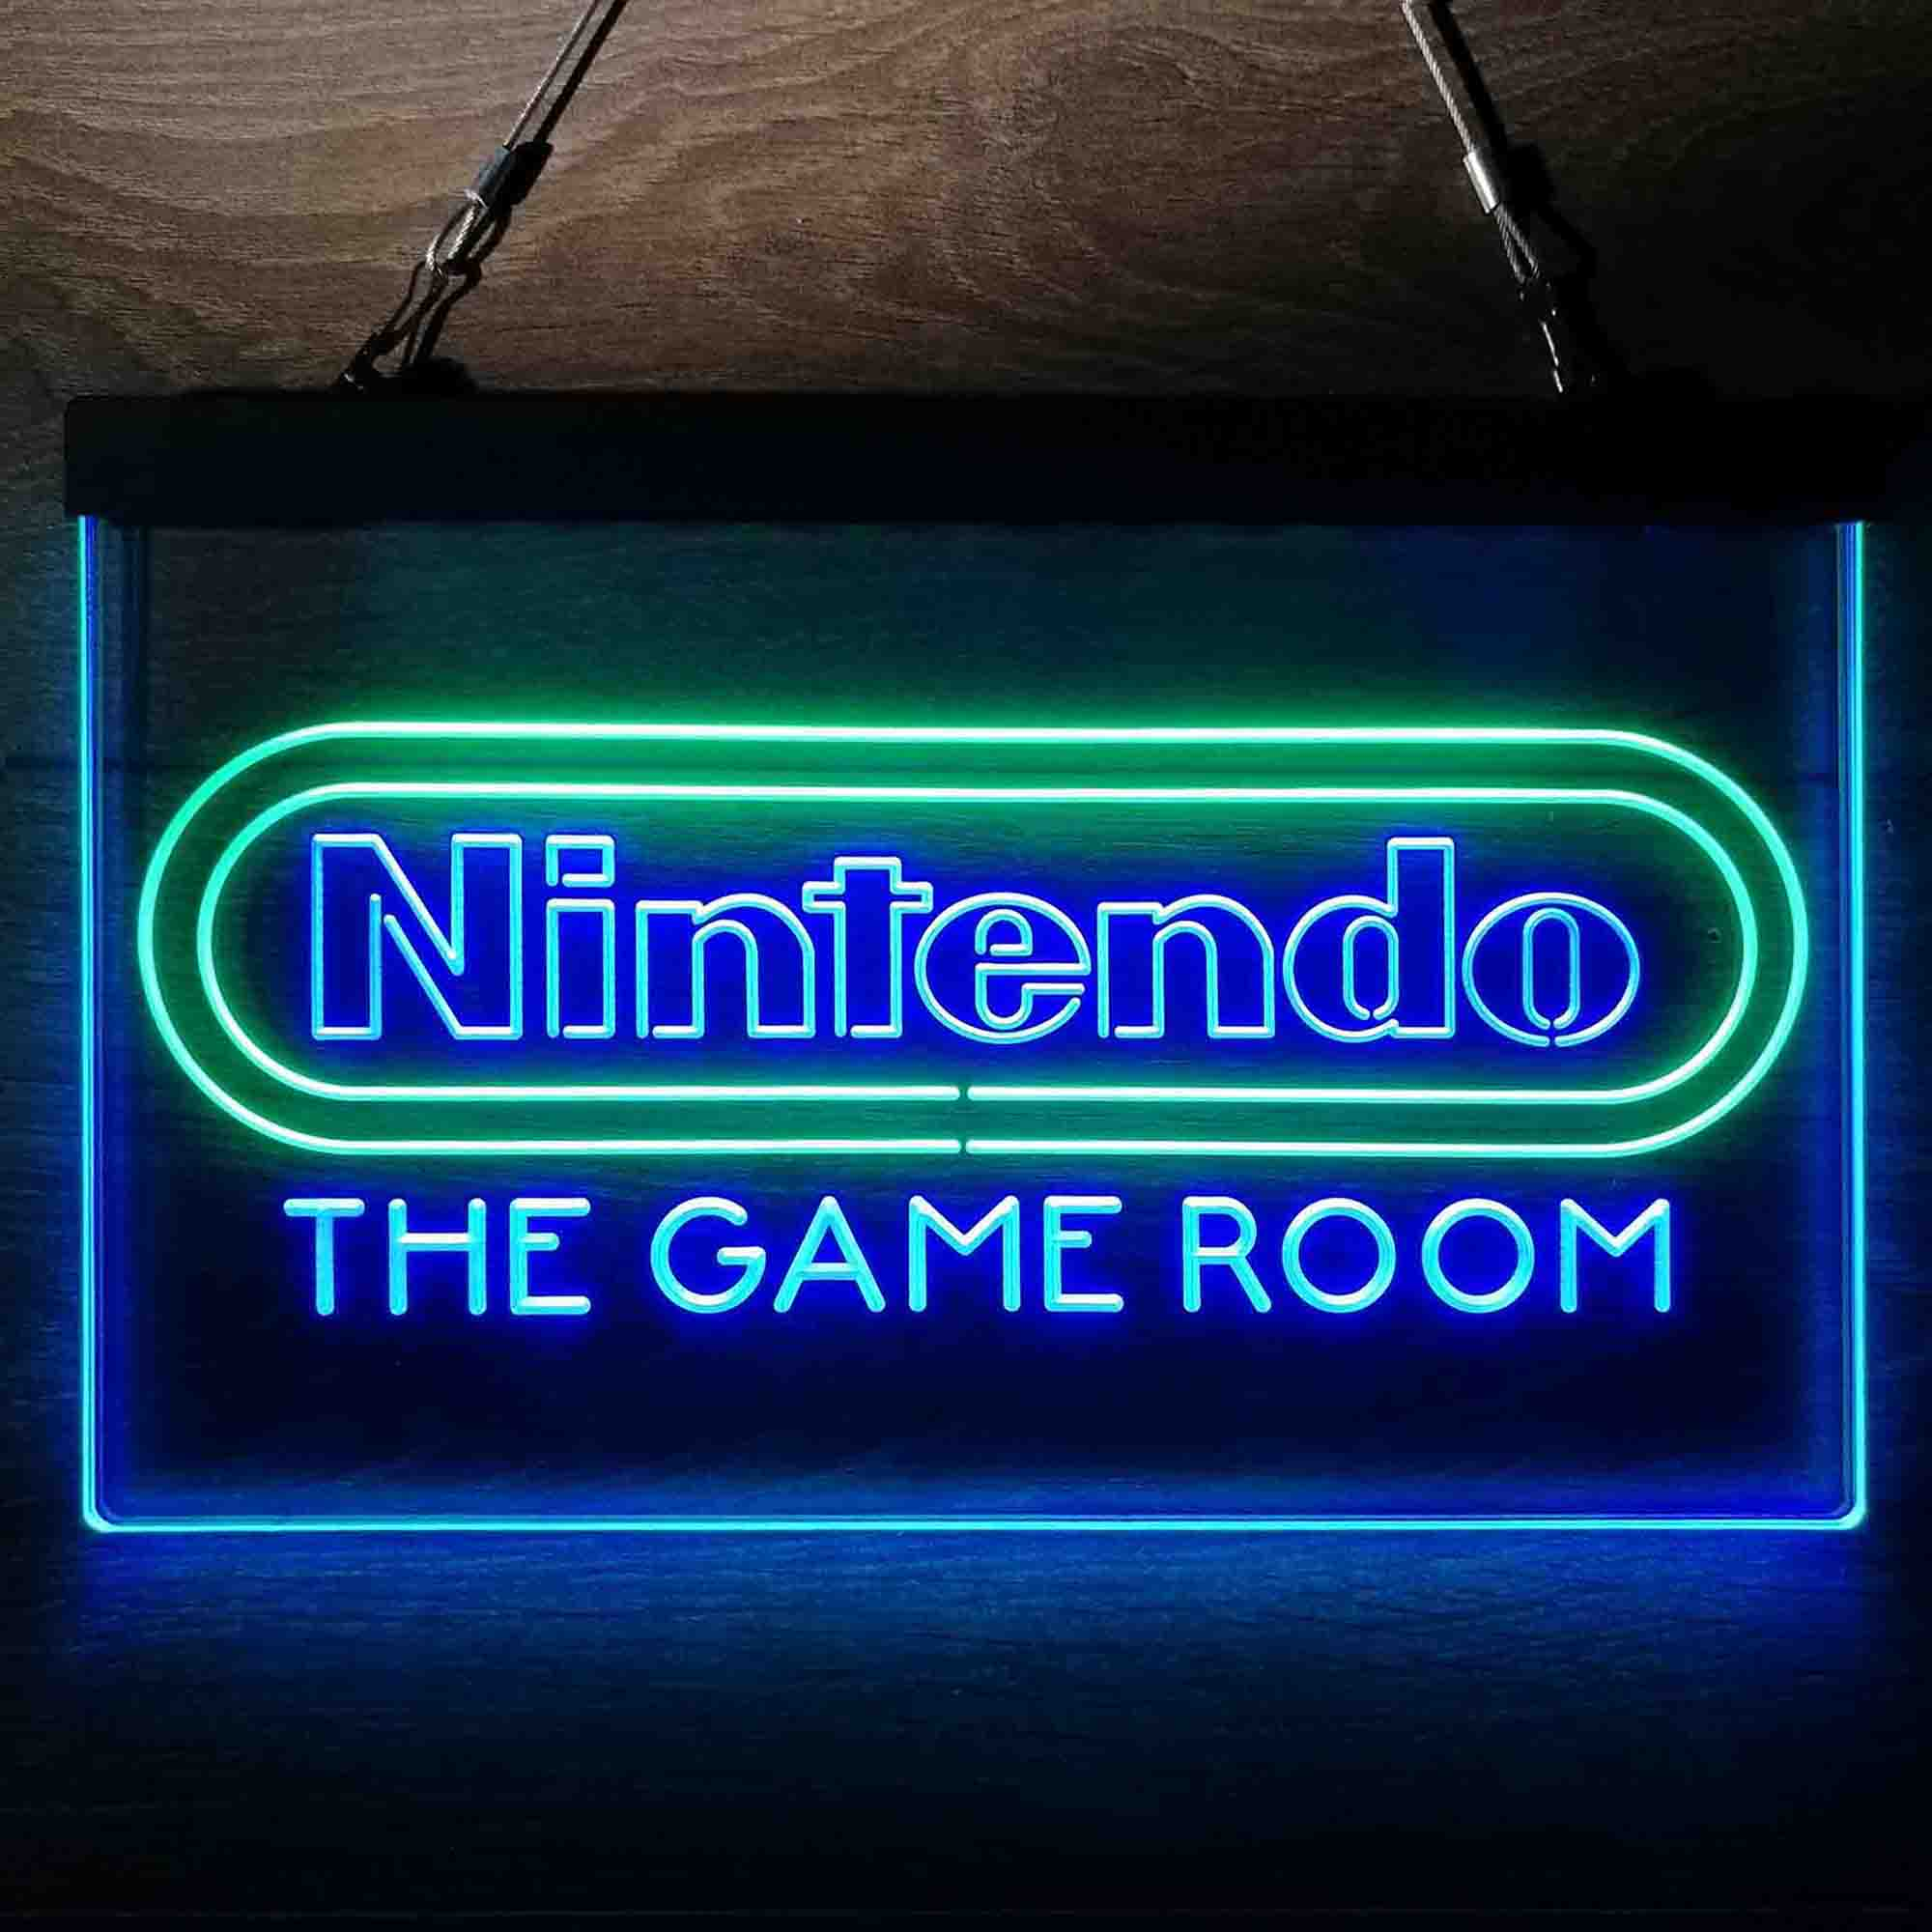 Custom Nintendo Game Room Neon-Like LED Sign